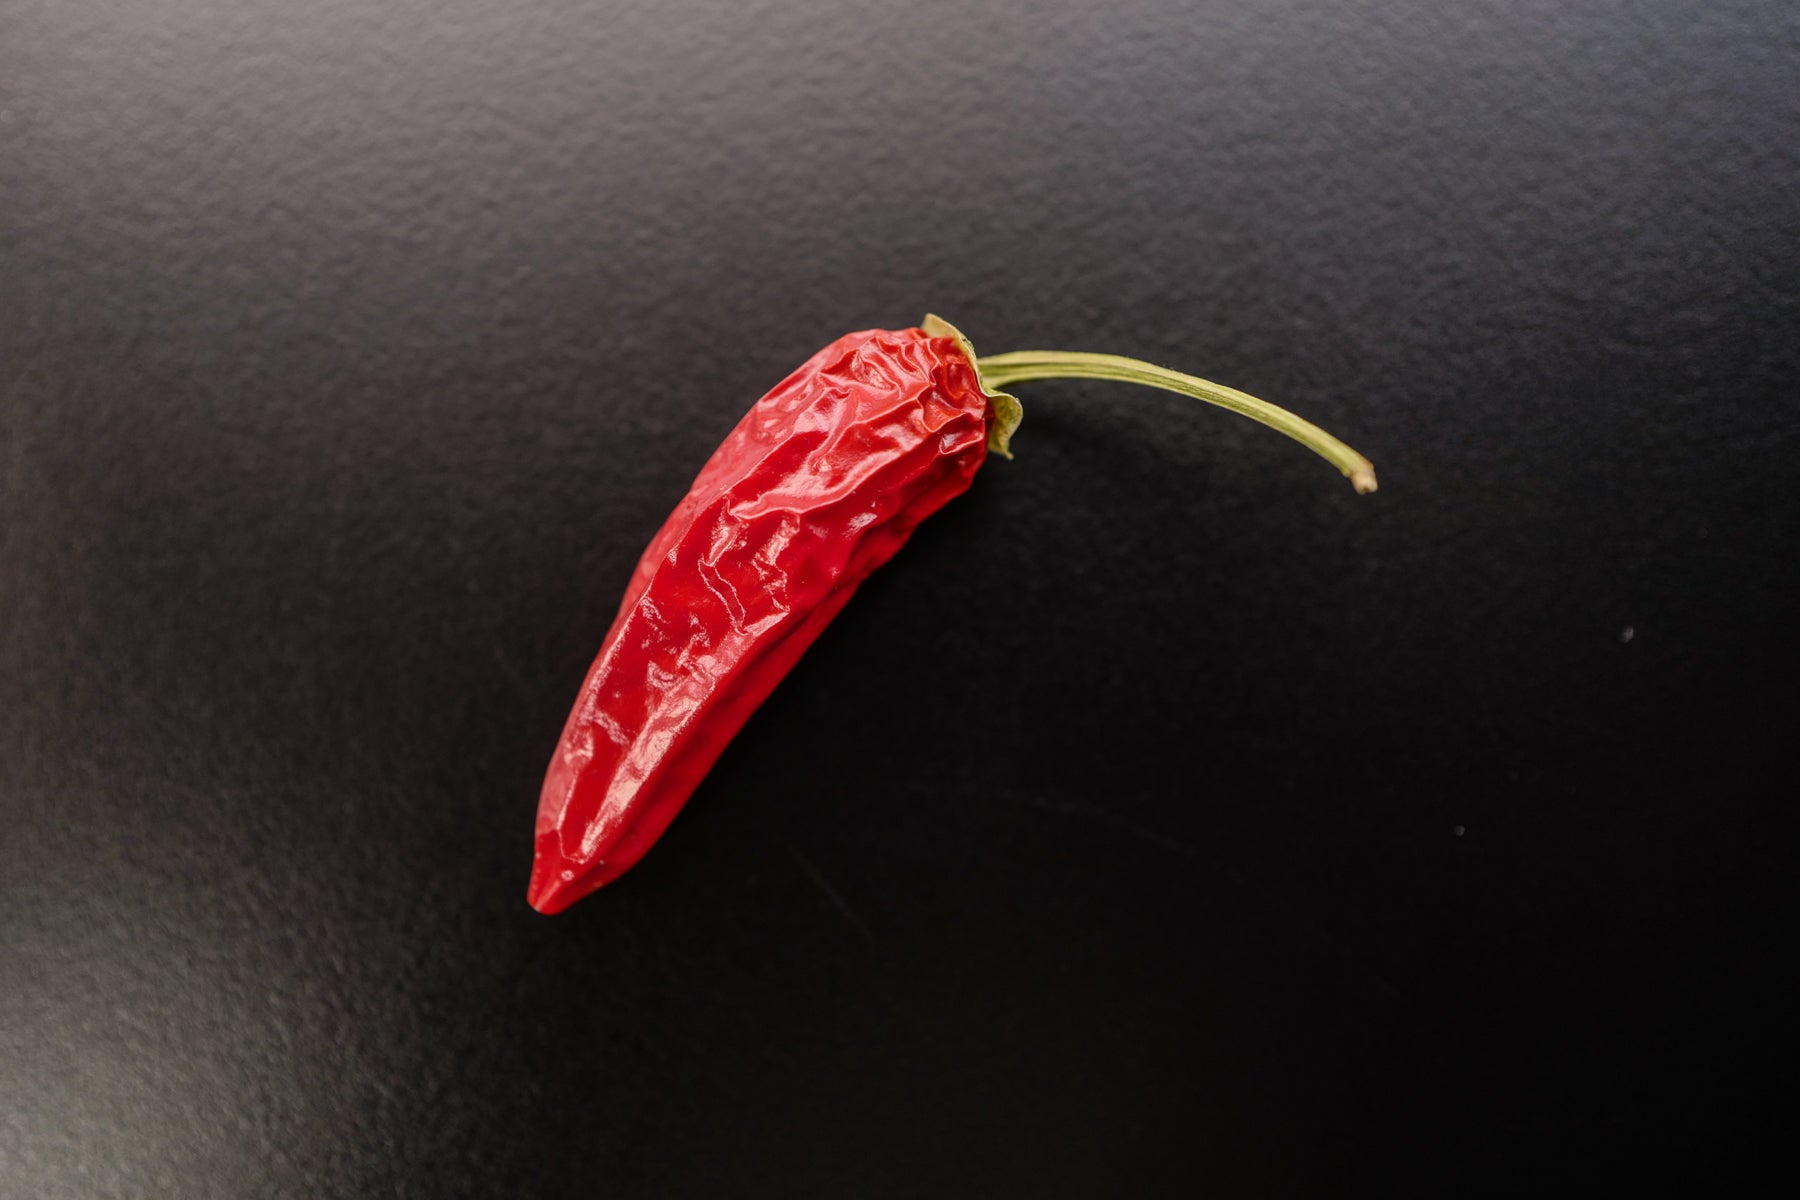 Old Chili Pepper